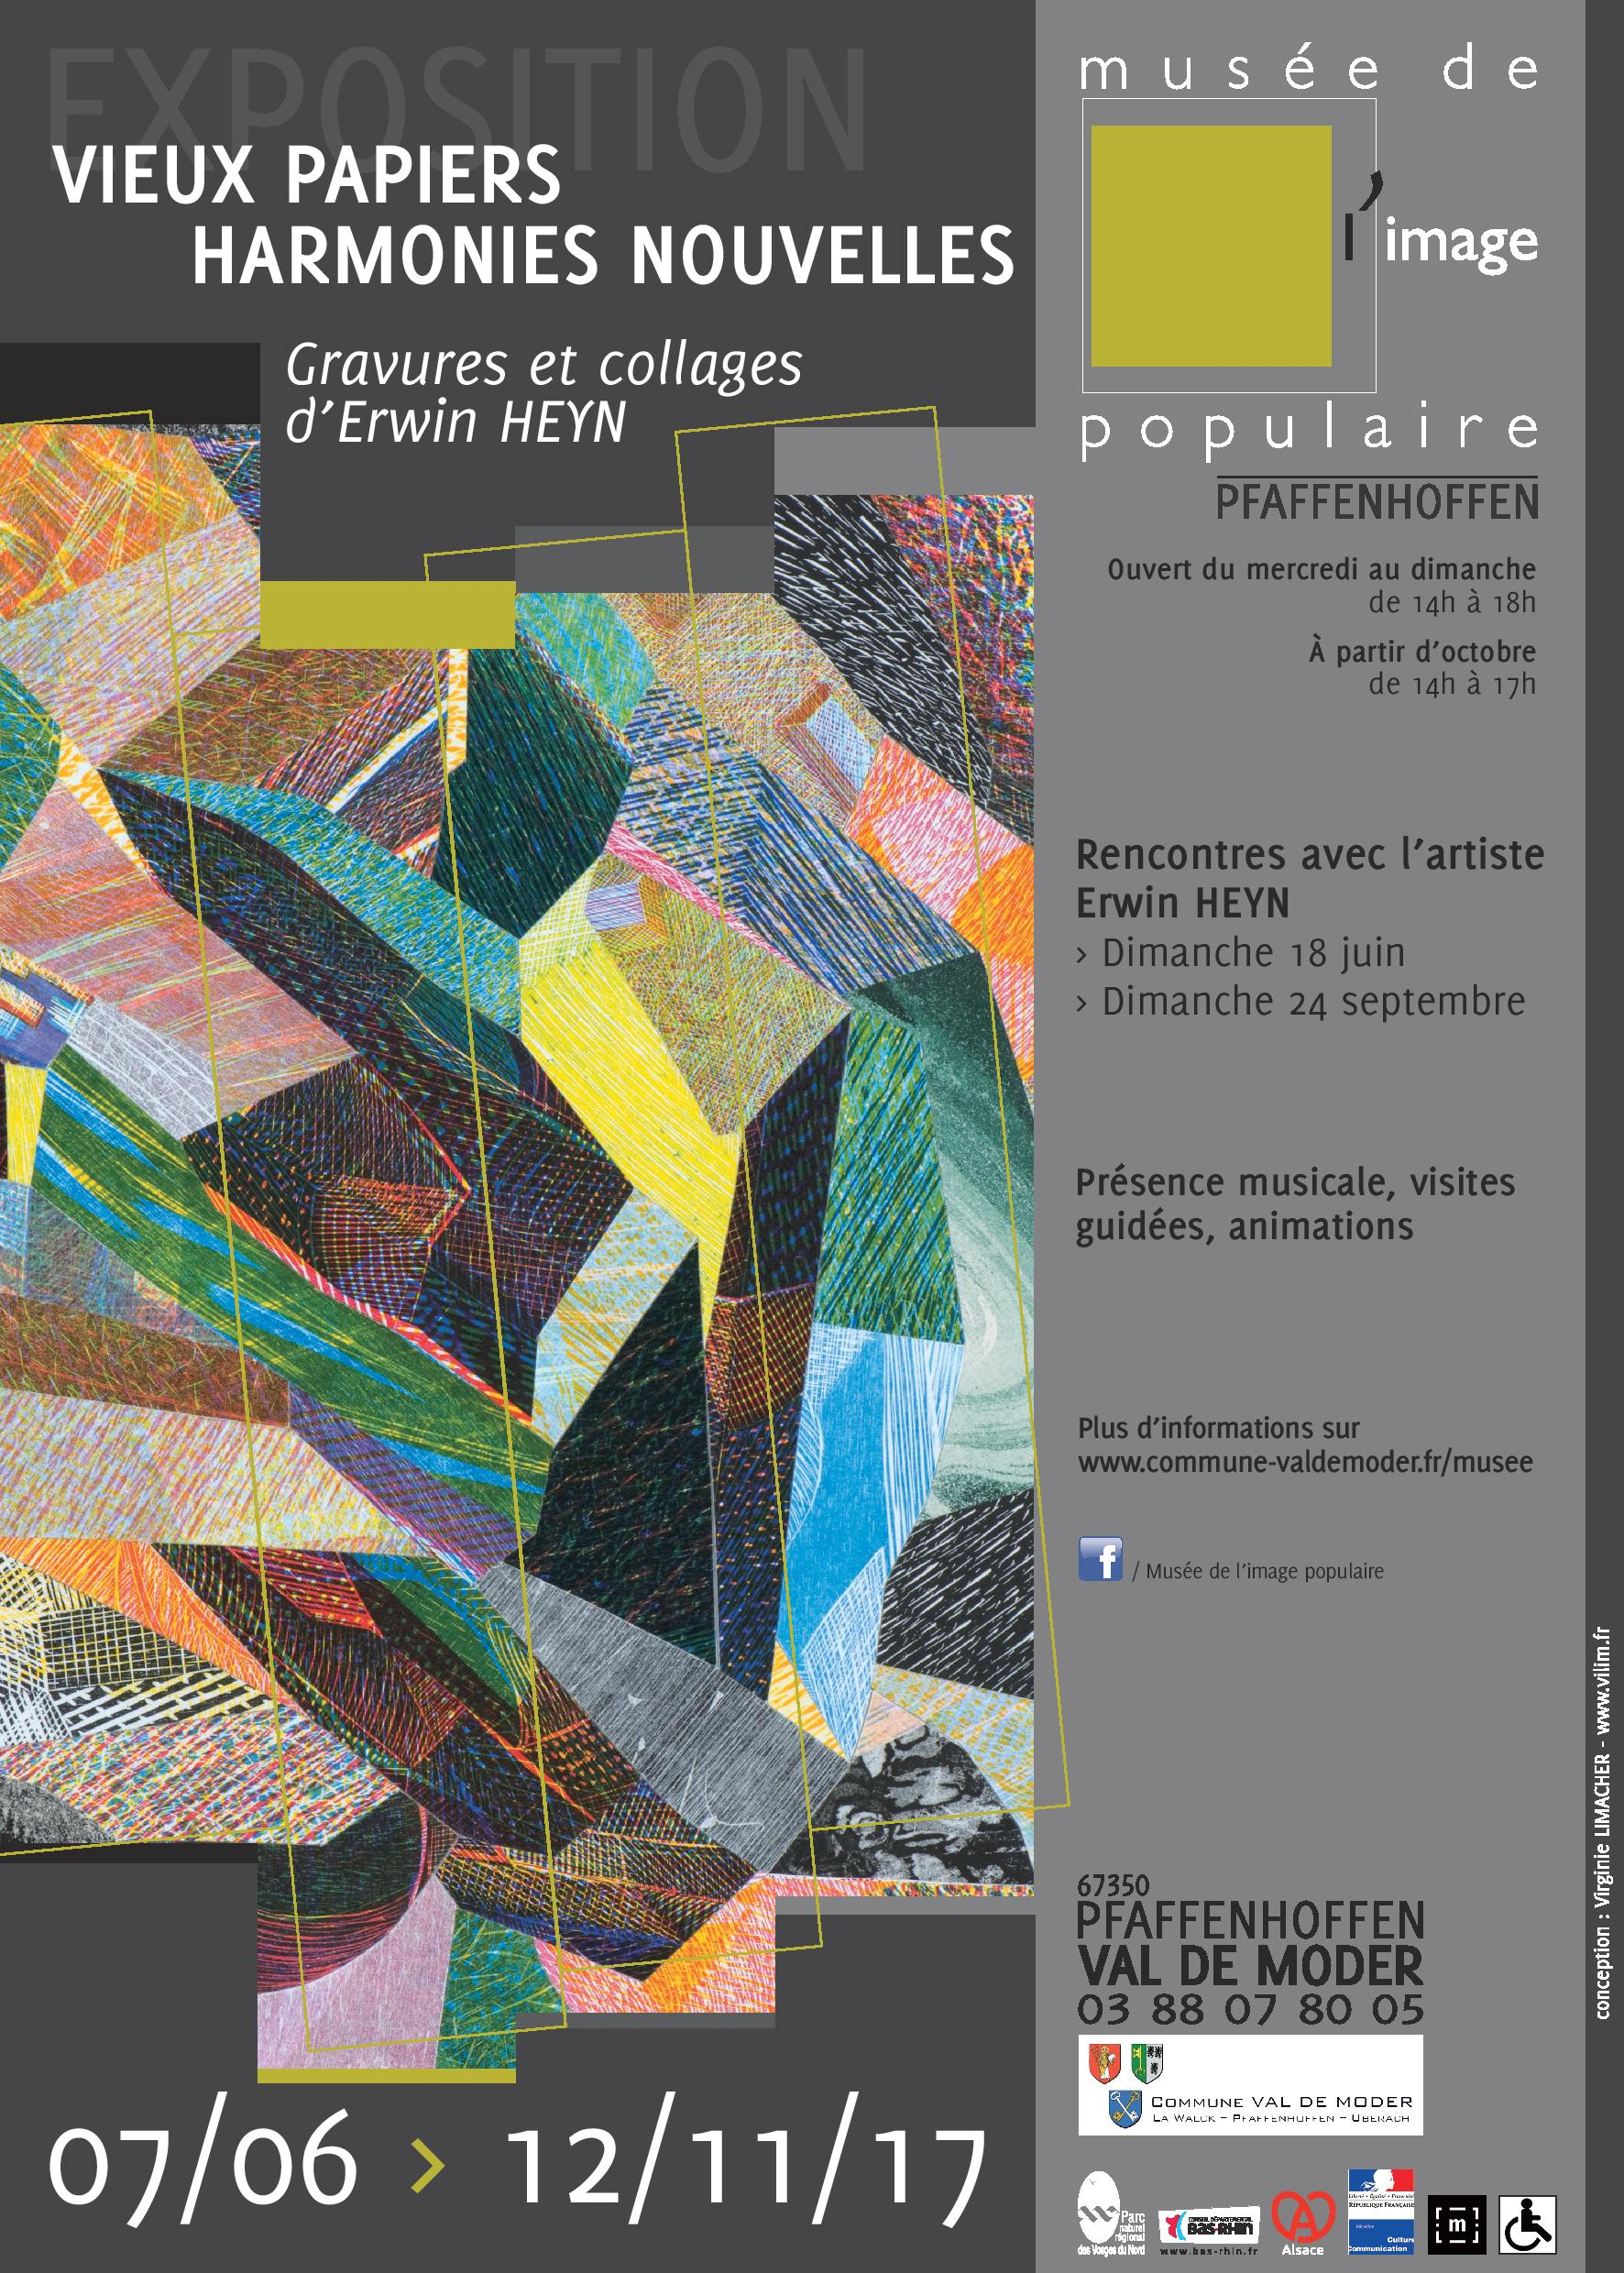 Gravures et collages Erwin HEYN 2017 ; © E. HEYN ; © MIPP